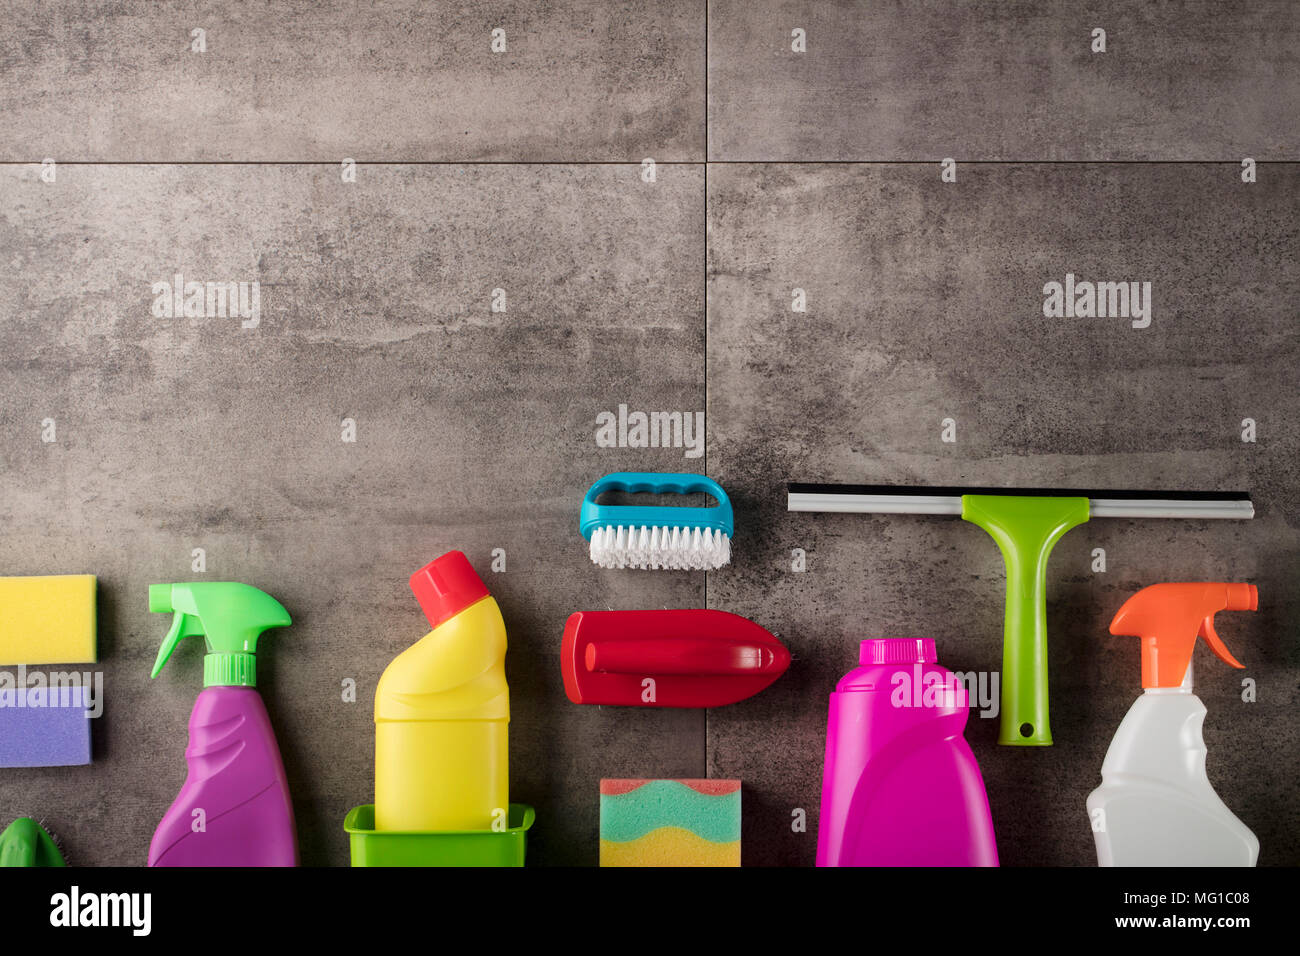 Spring cleaning concept. Colorful cleaning products on gray tiles. Place for typography. - Stock Image